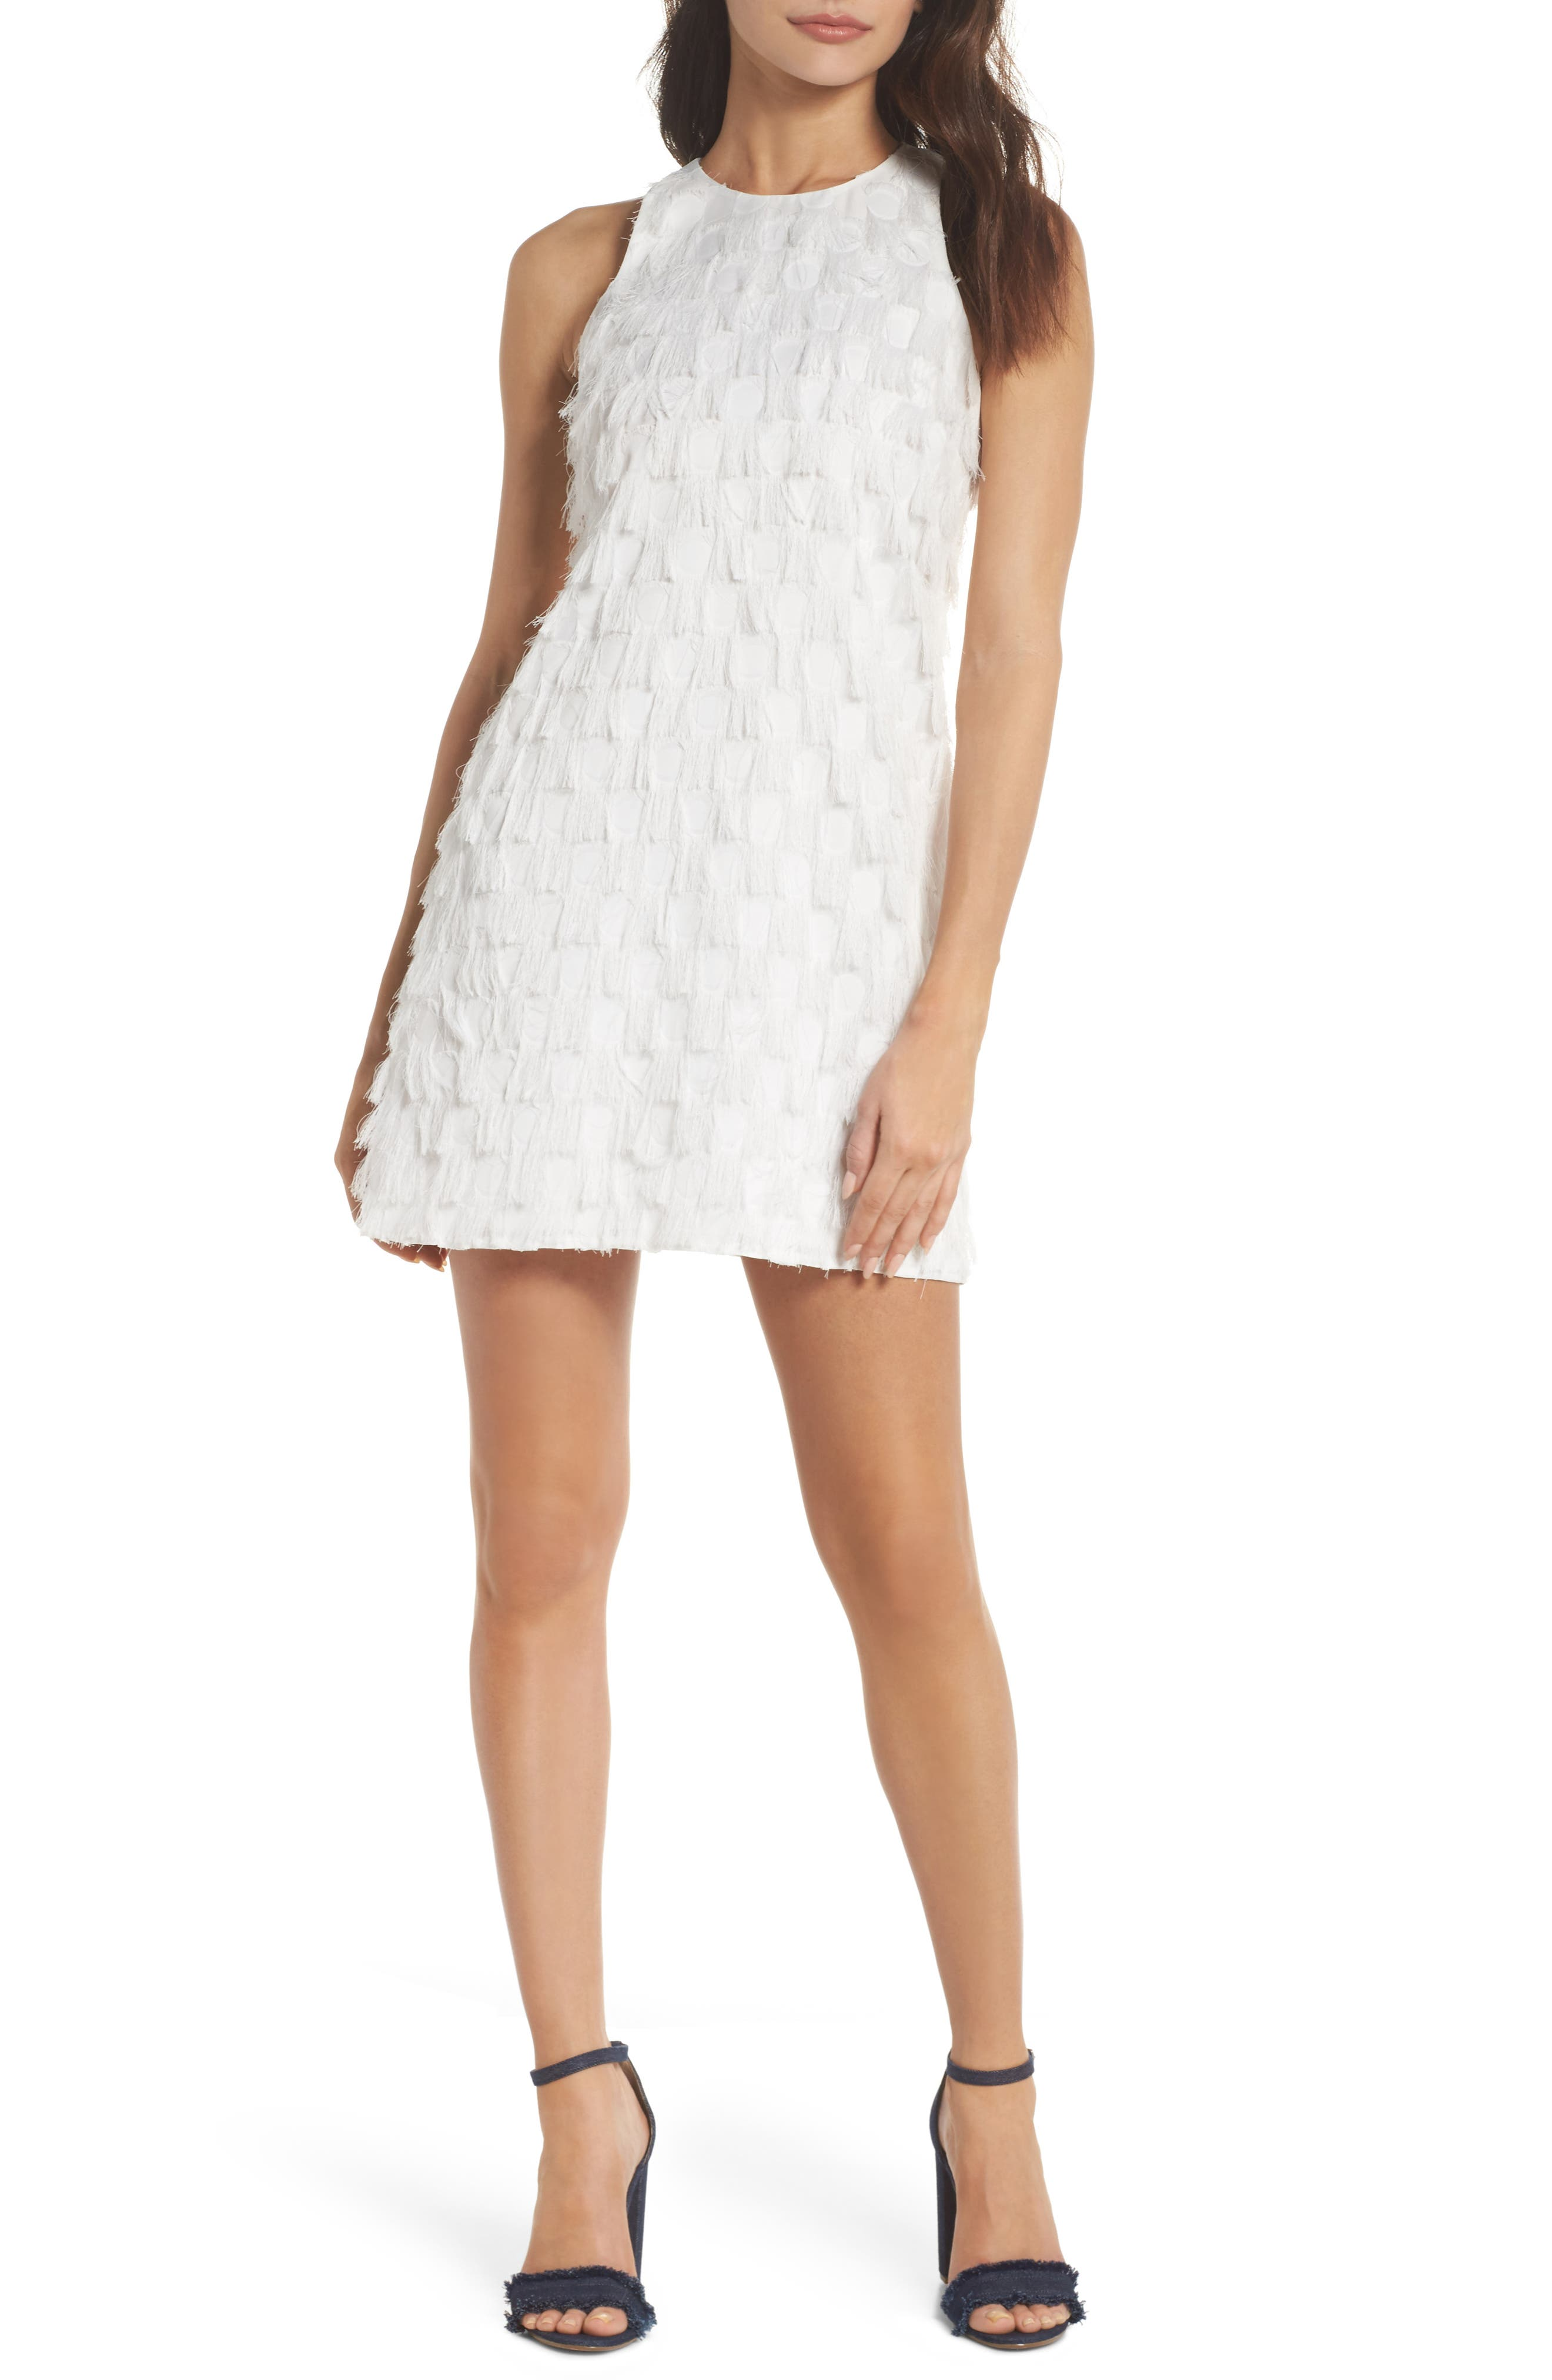 Shake Your Tail Feathers Minidress,                         Main,                         color, White Fringe